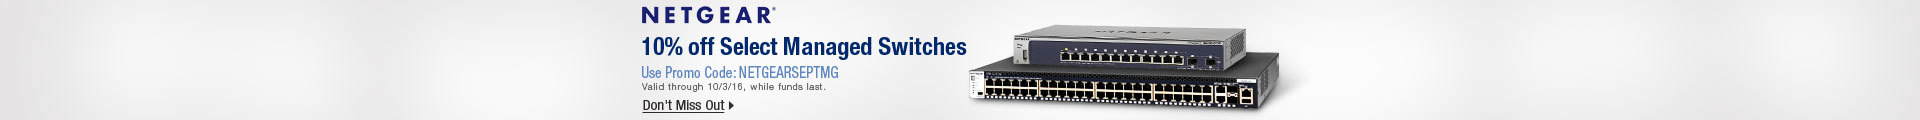 10% off select managed switches